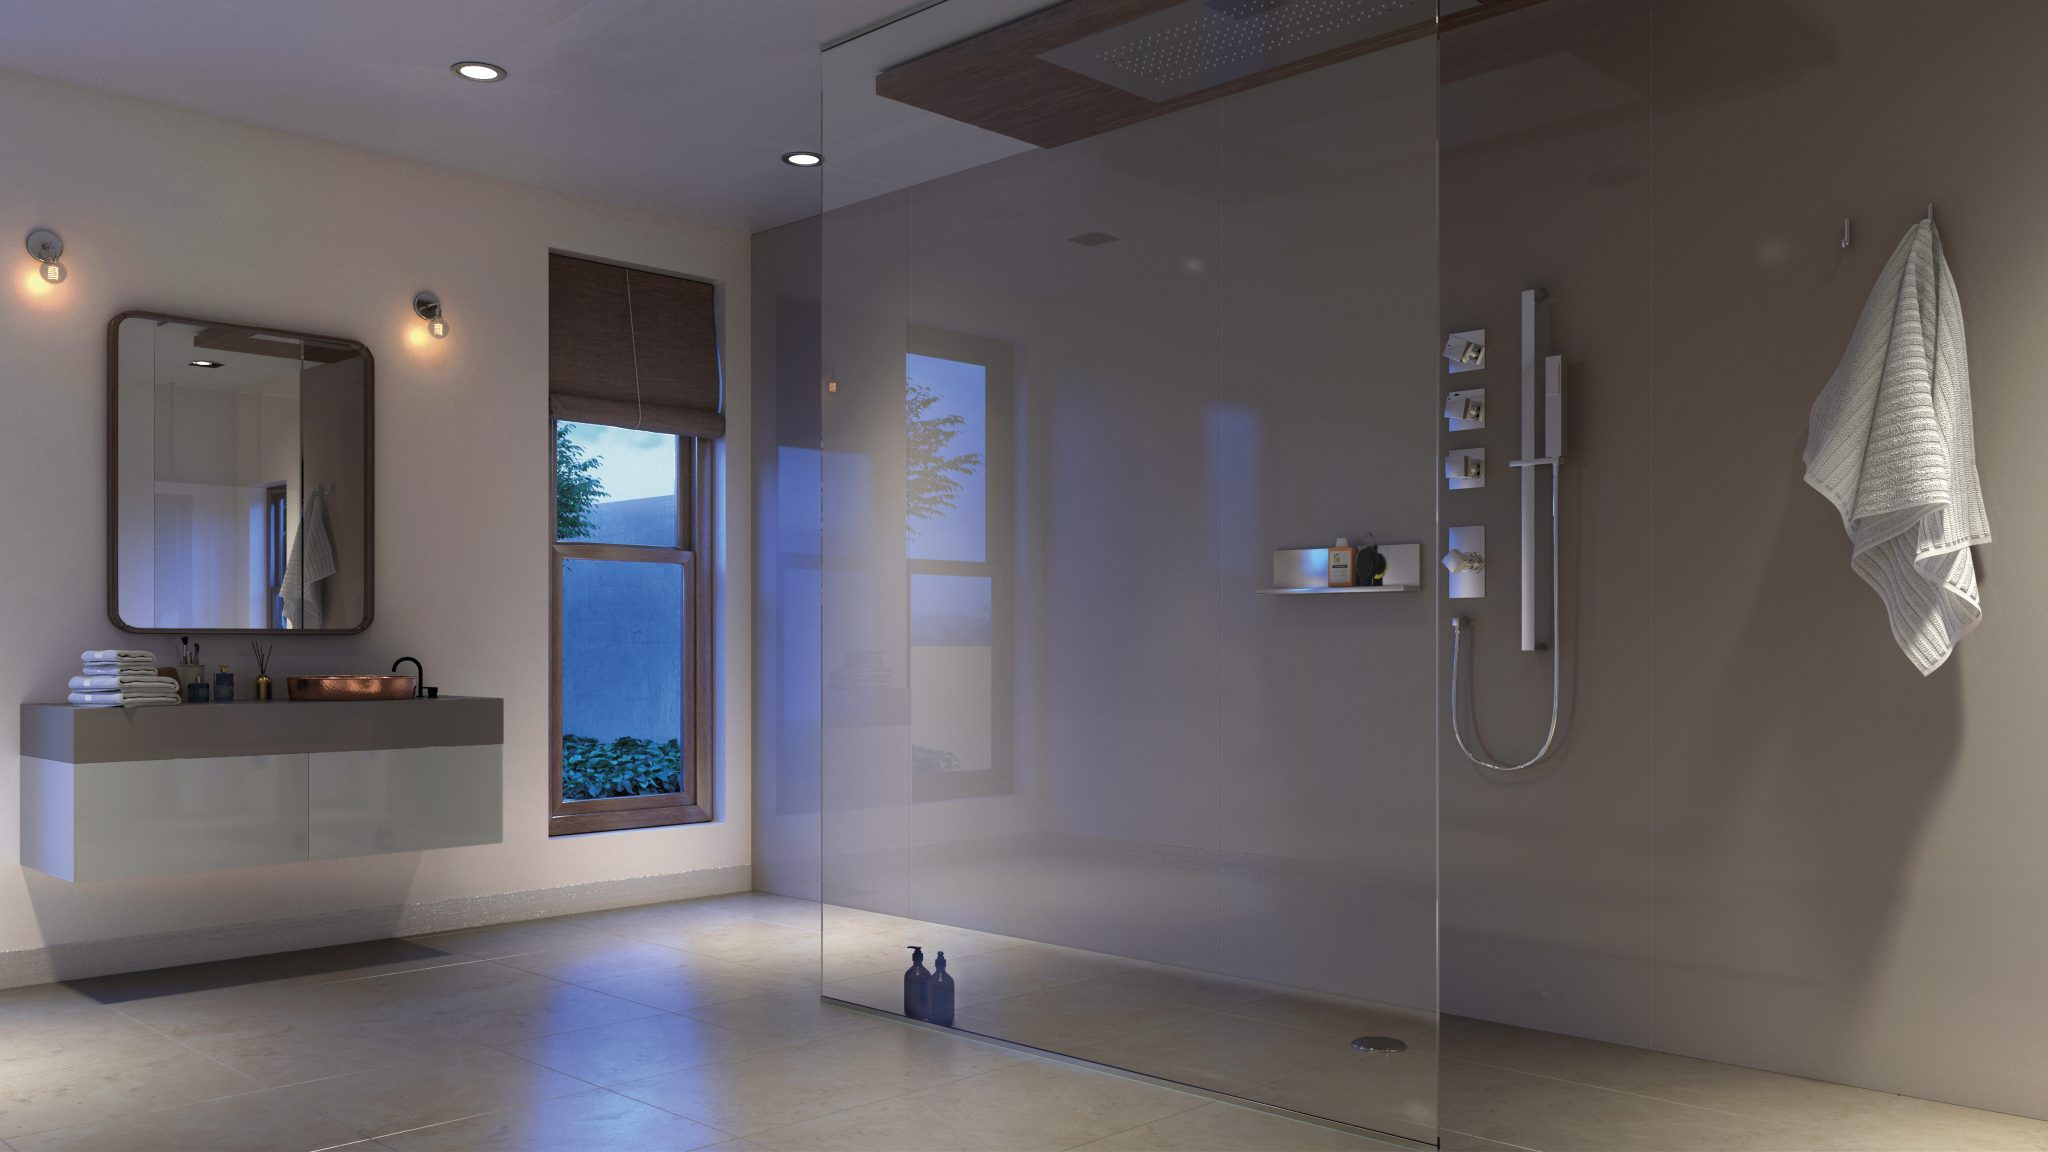 A quick and easy alternative to tiling your bathroom, Showerwall offers a hygienic, fuss-free installation, hassle-free panelling for your bathroom, which is cost-effective for those looking to renovate modern and traditional spaces on a budget. For bathroom tiling ideas to save money, click through to read more.